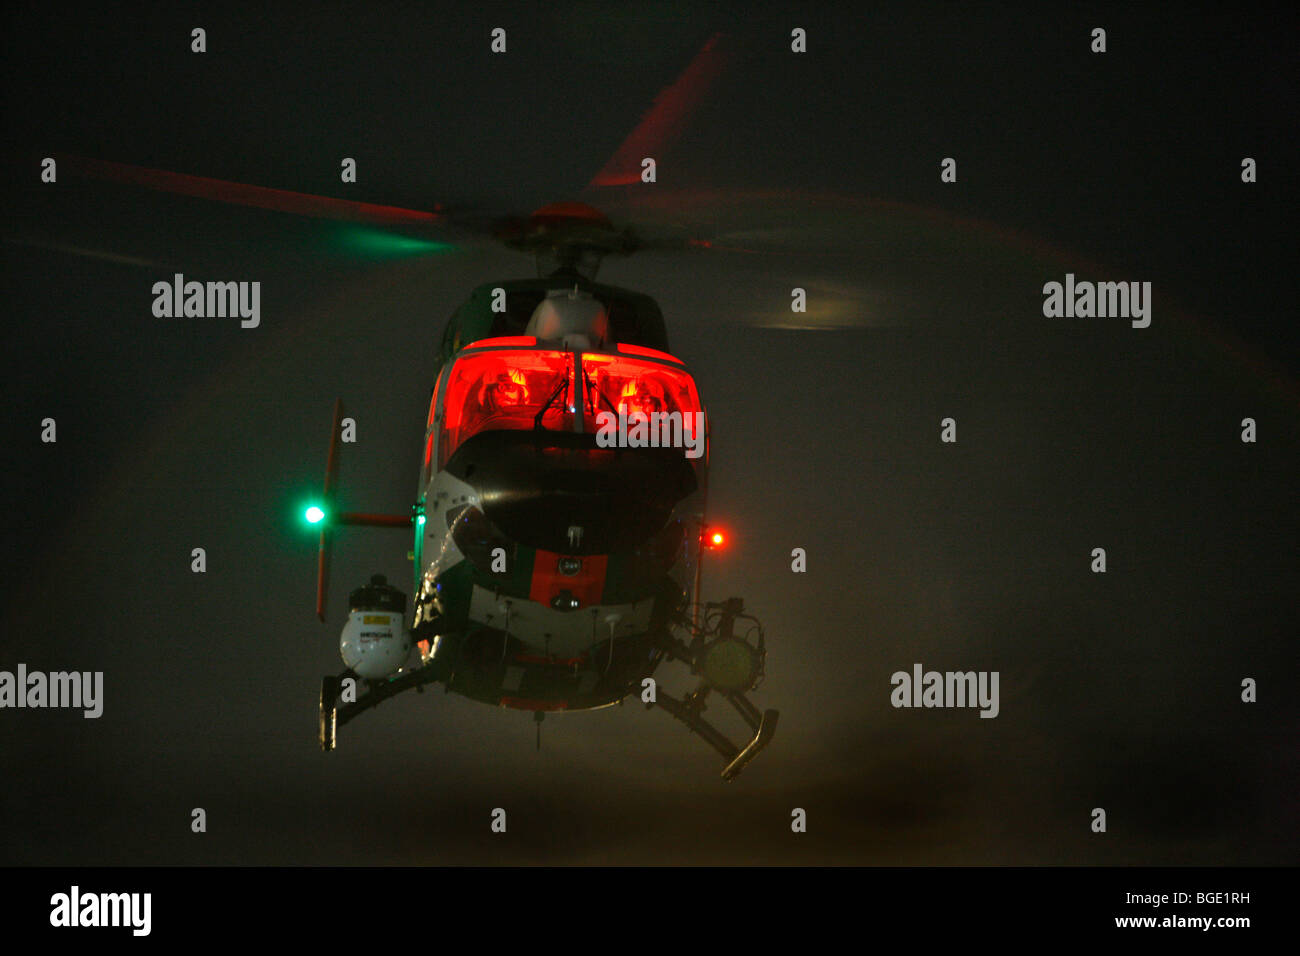 polizei hubschrauber in der nacht mit infrarot kamera d sseldorf nrw europa stockfoto bild. Black Bedroom Furniture Sets. Home Design Ideas